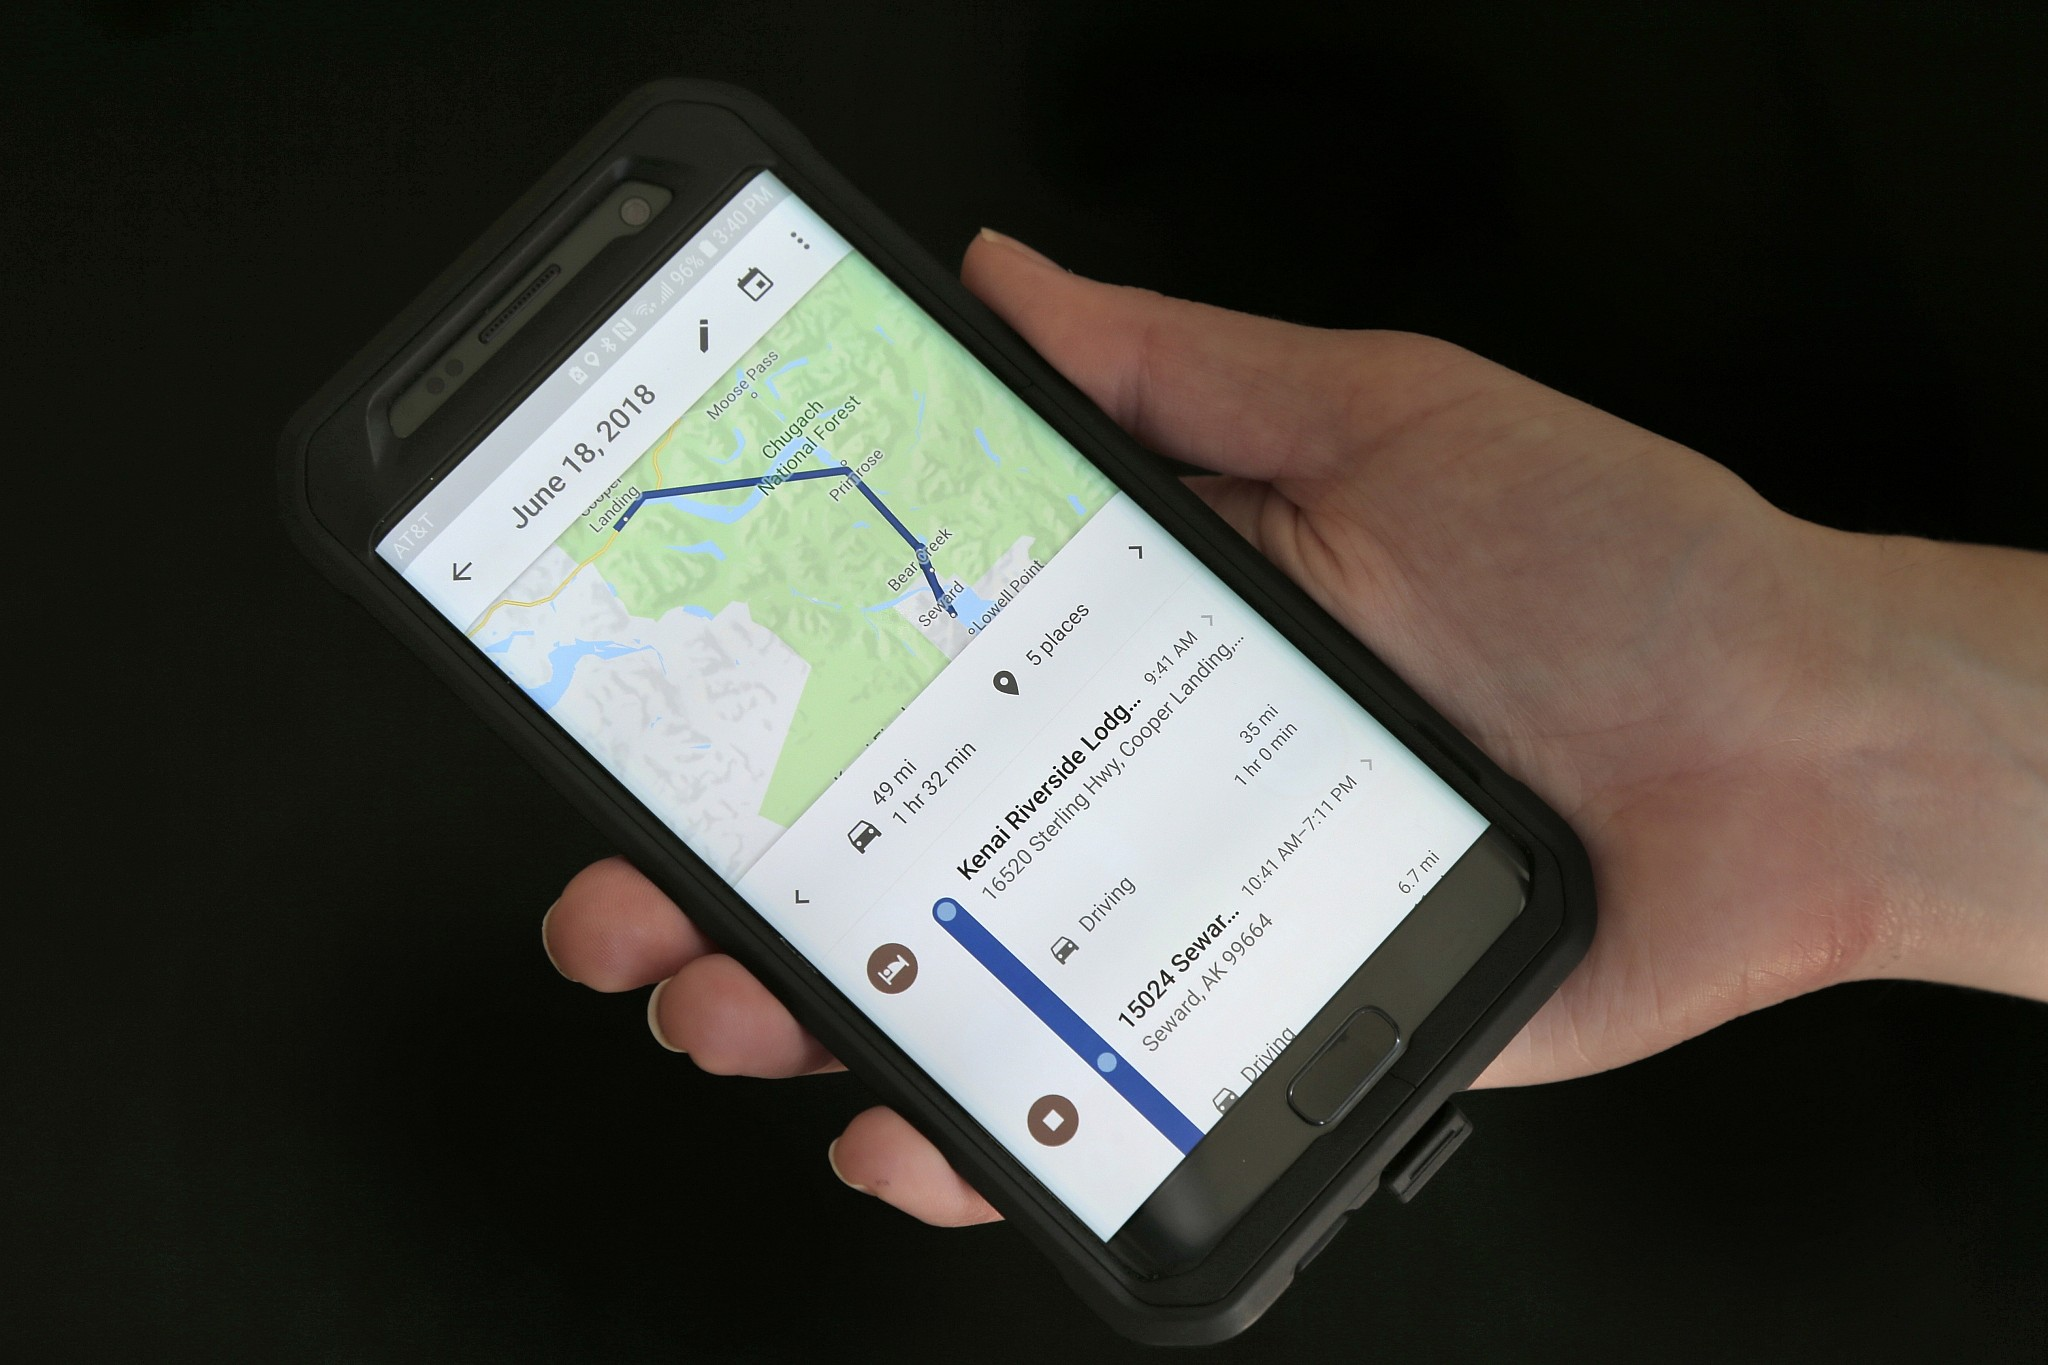 What Google changed in its location-tracking explanation